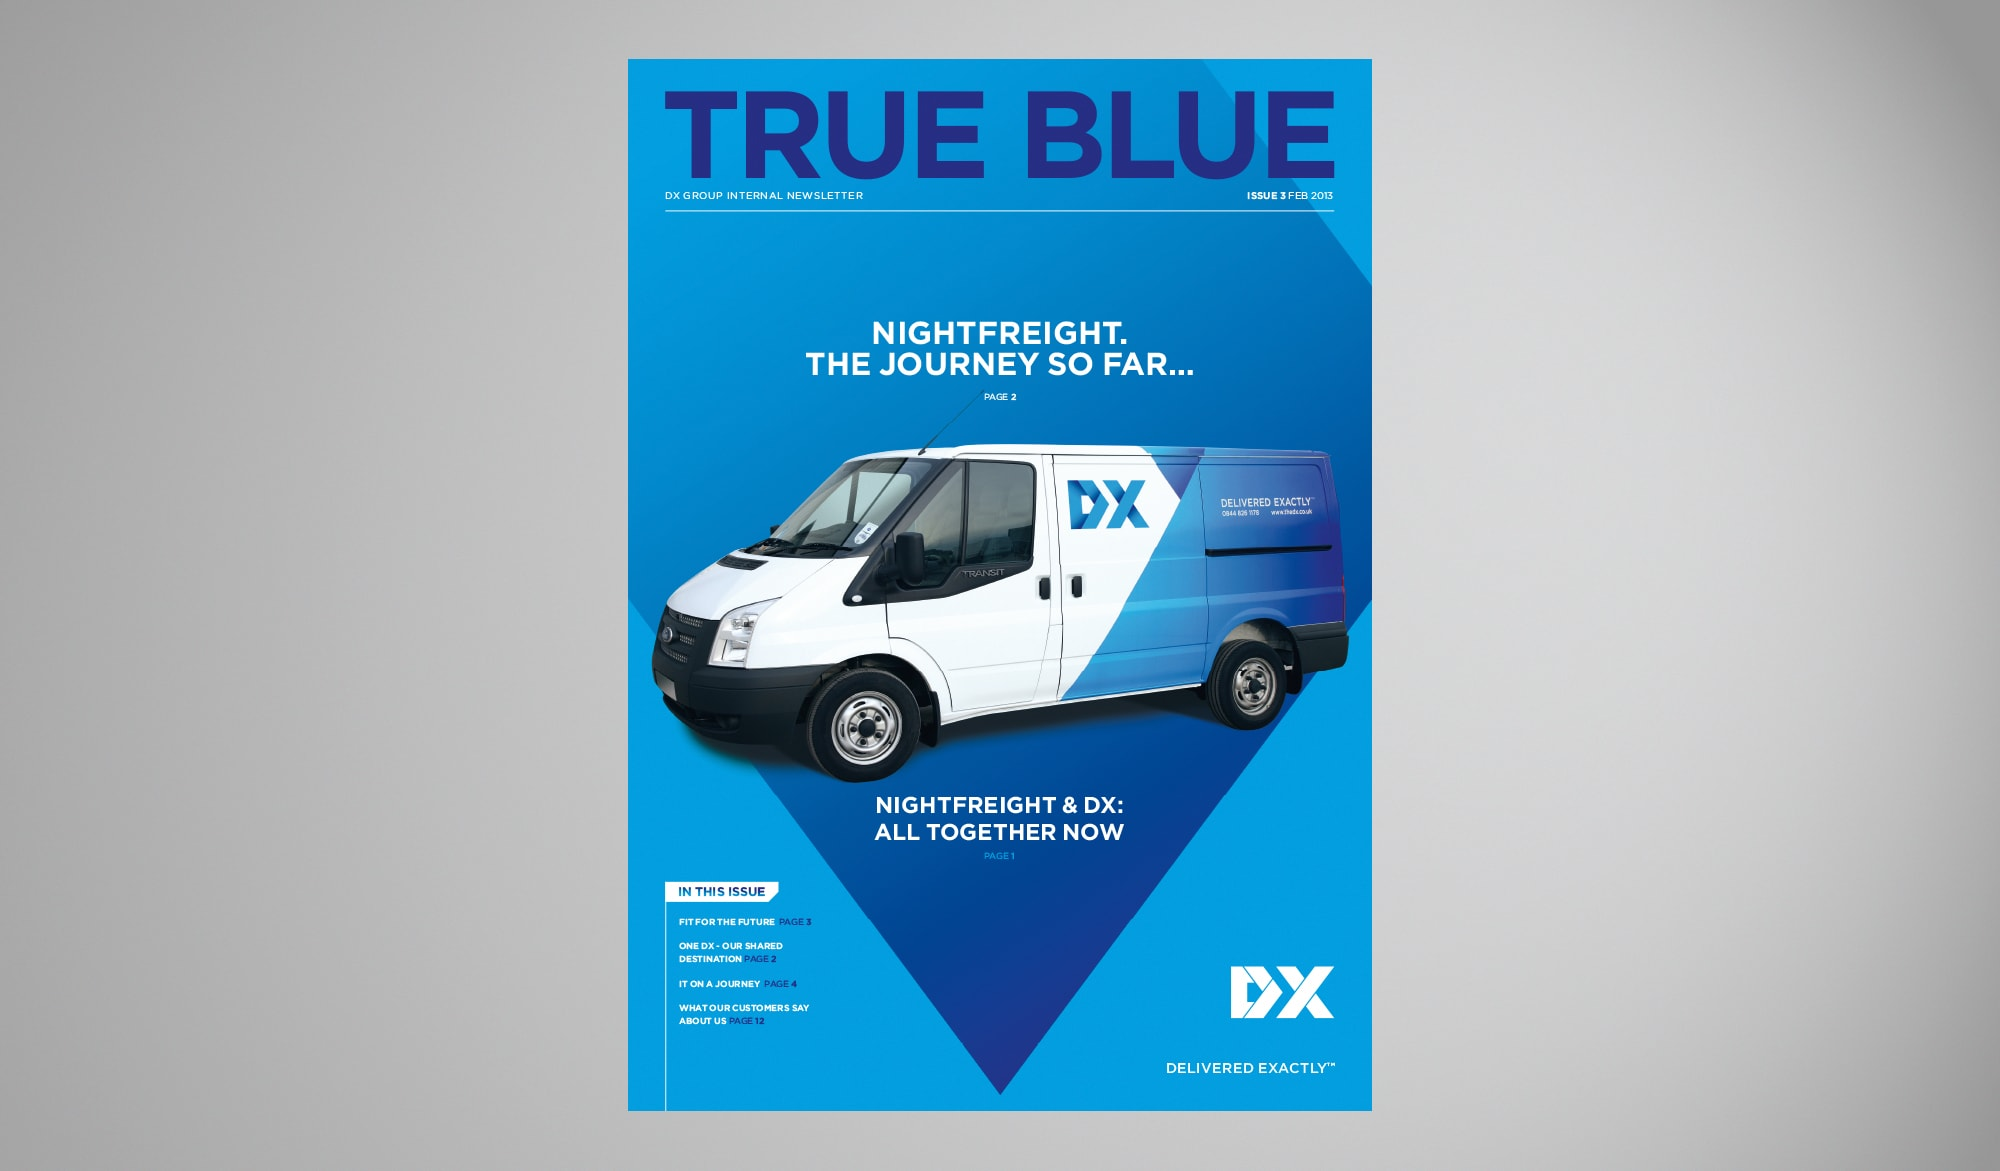 DX true blue newsletter cover